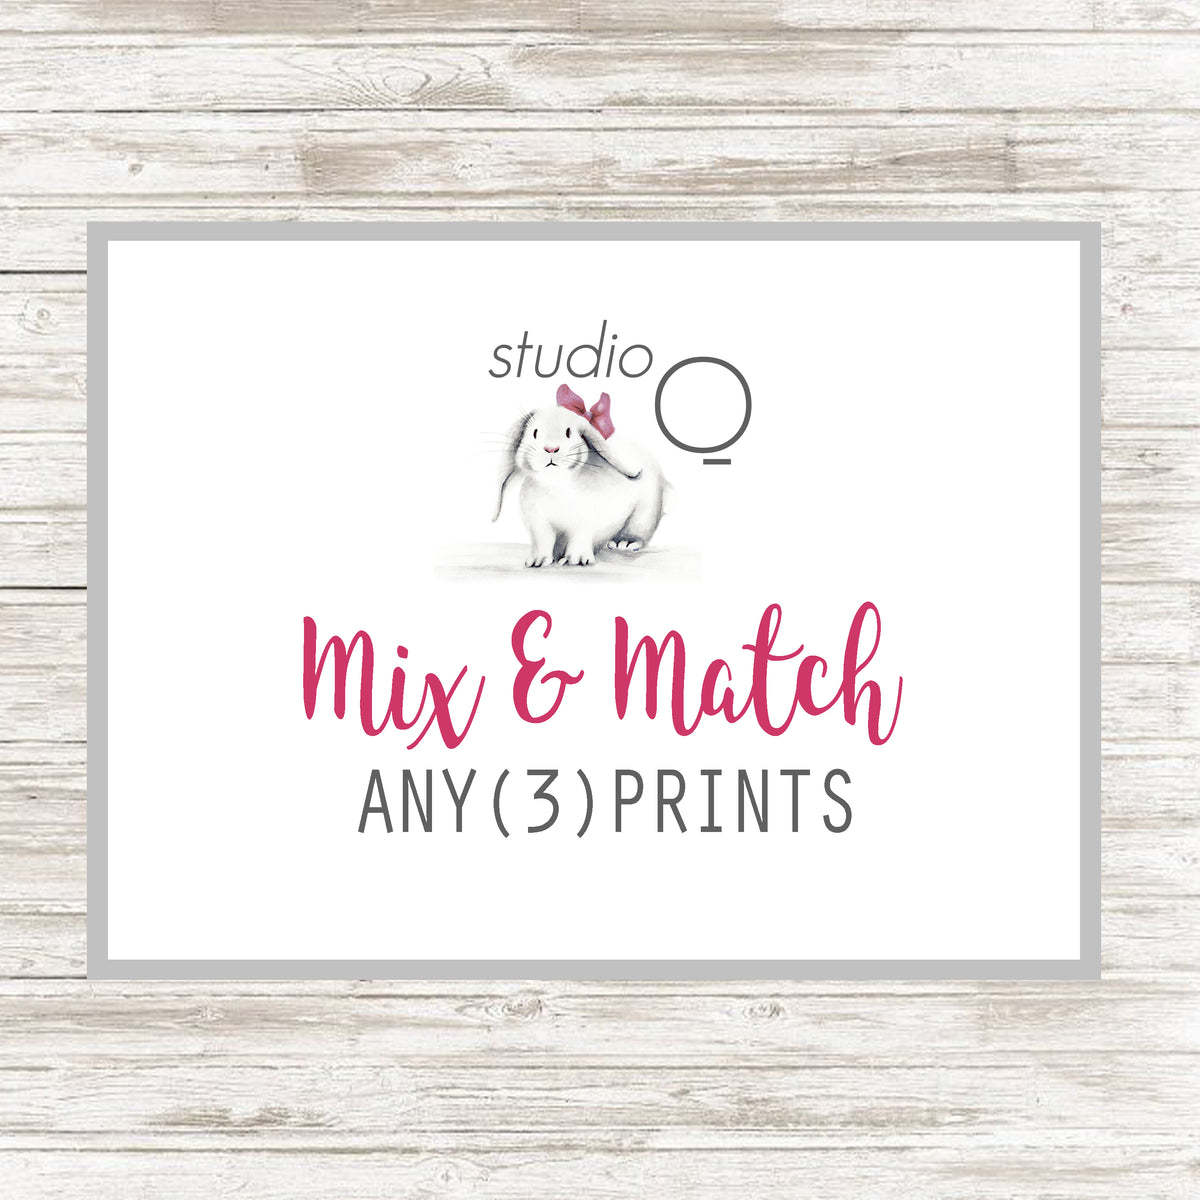 Mix and Match Sets